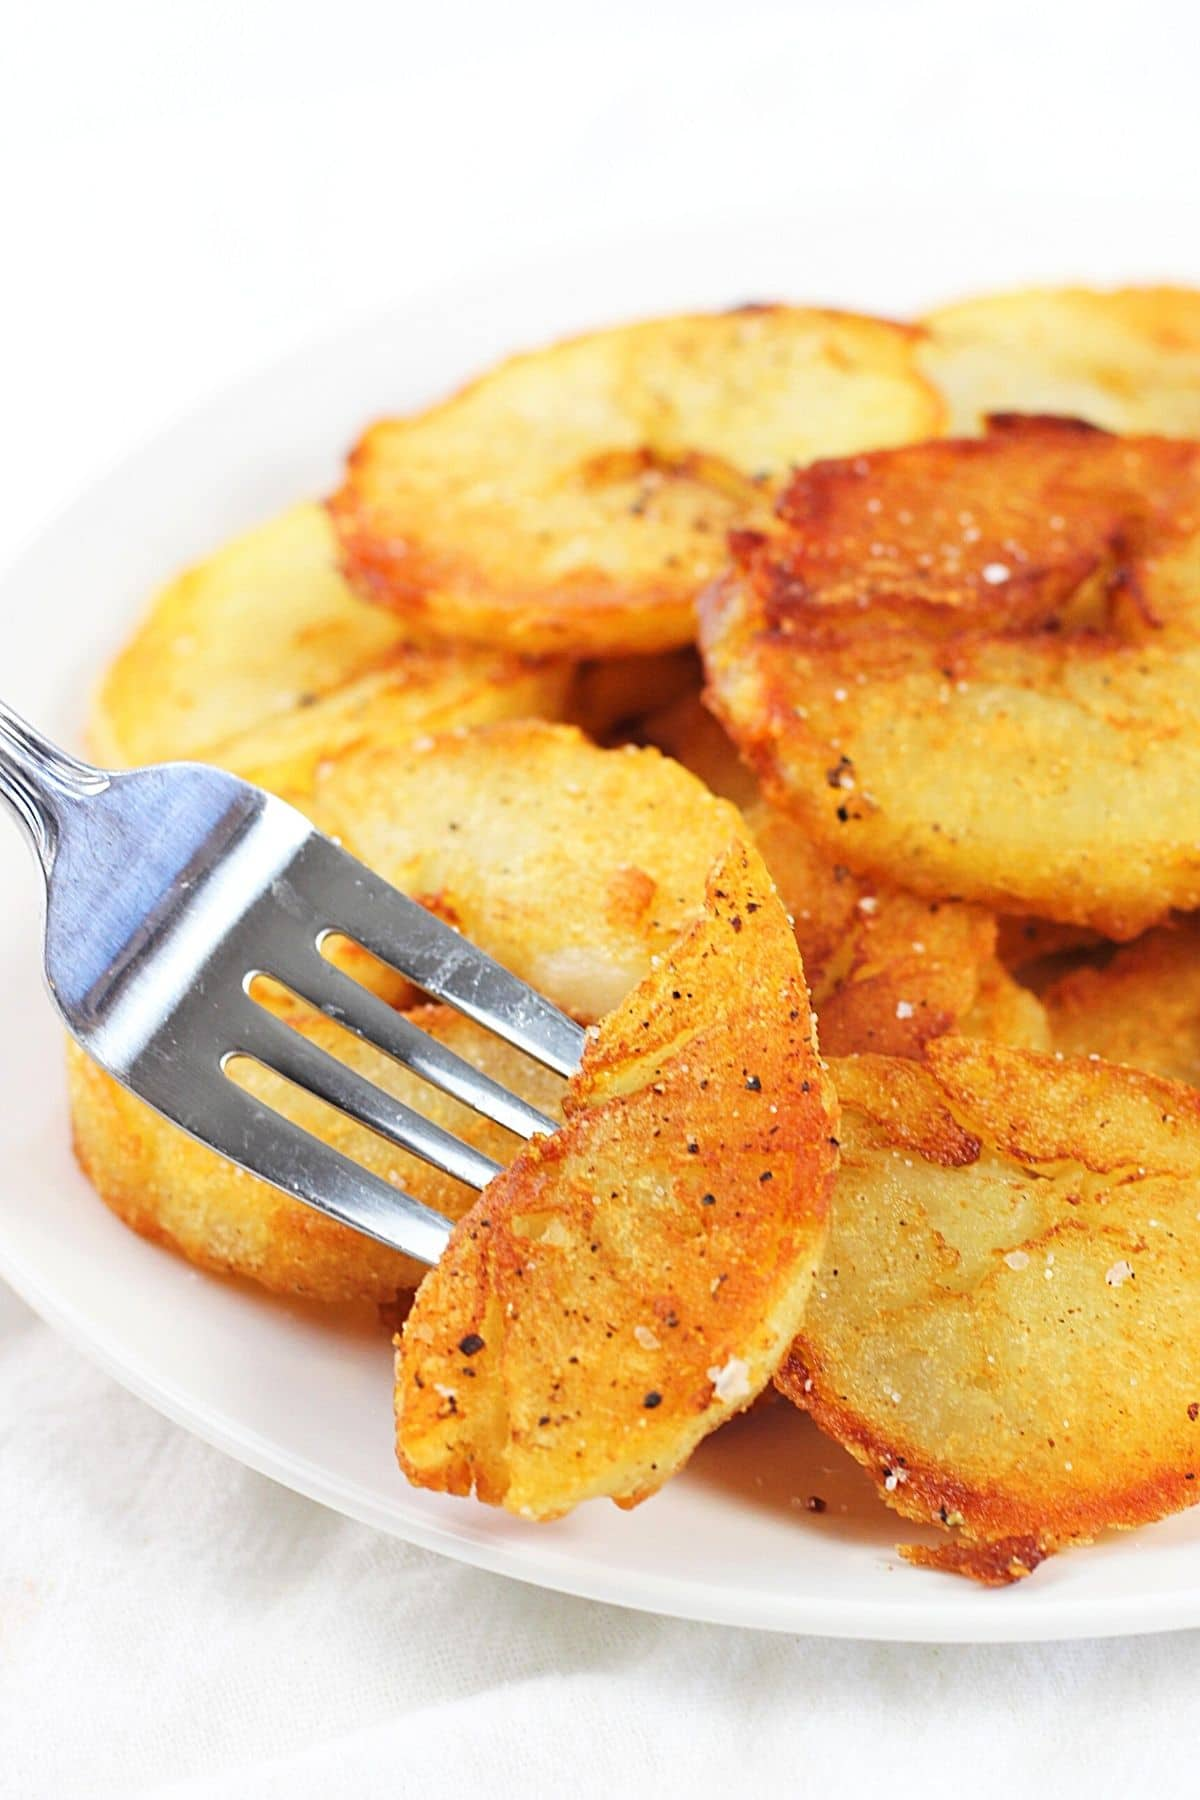 leftover baked potato home fries on a white plate with a fork piercing one piece of potato